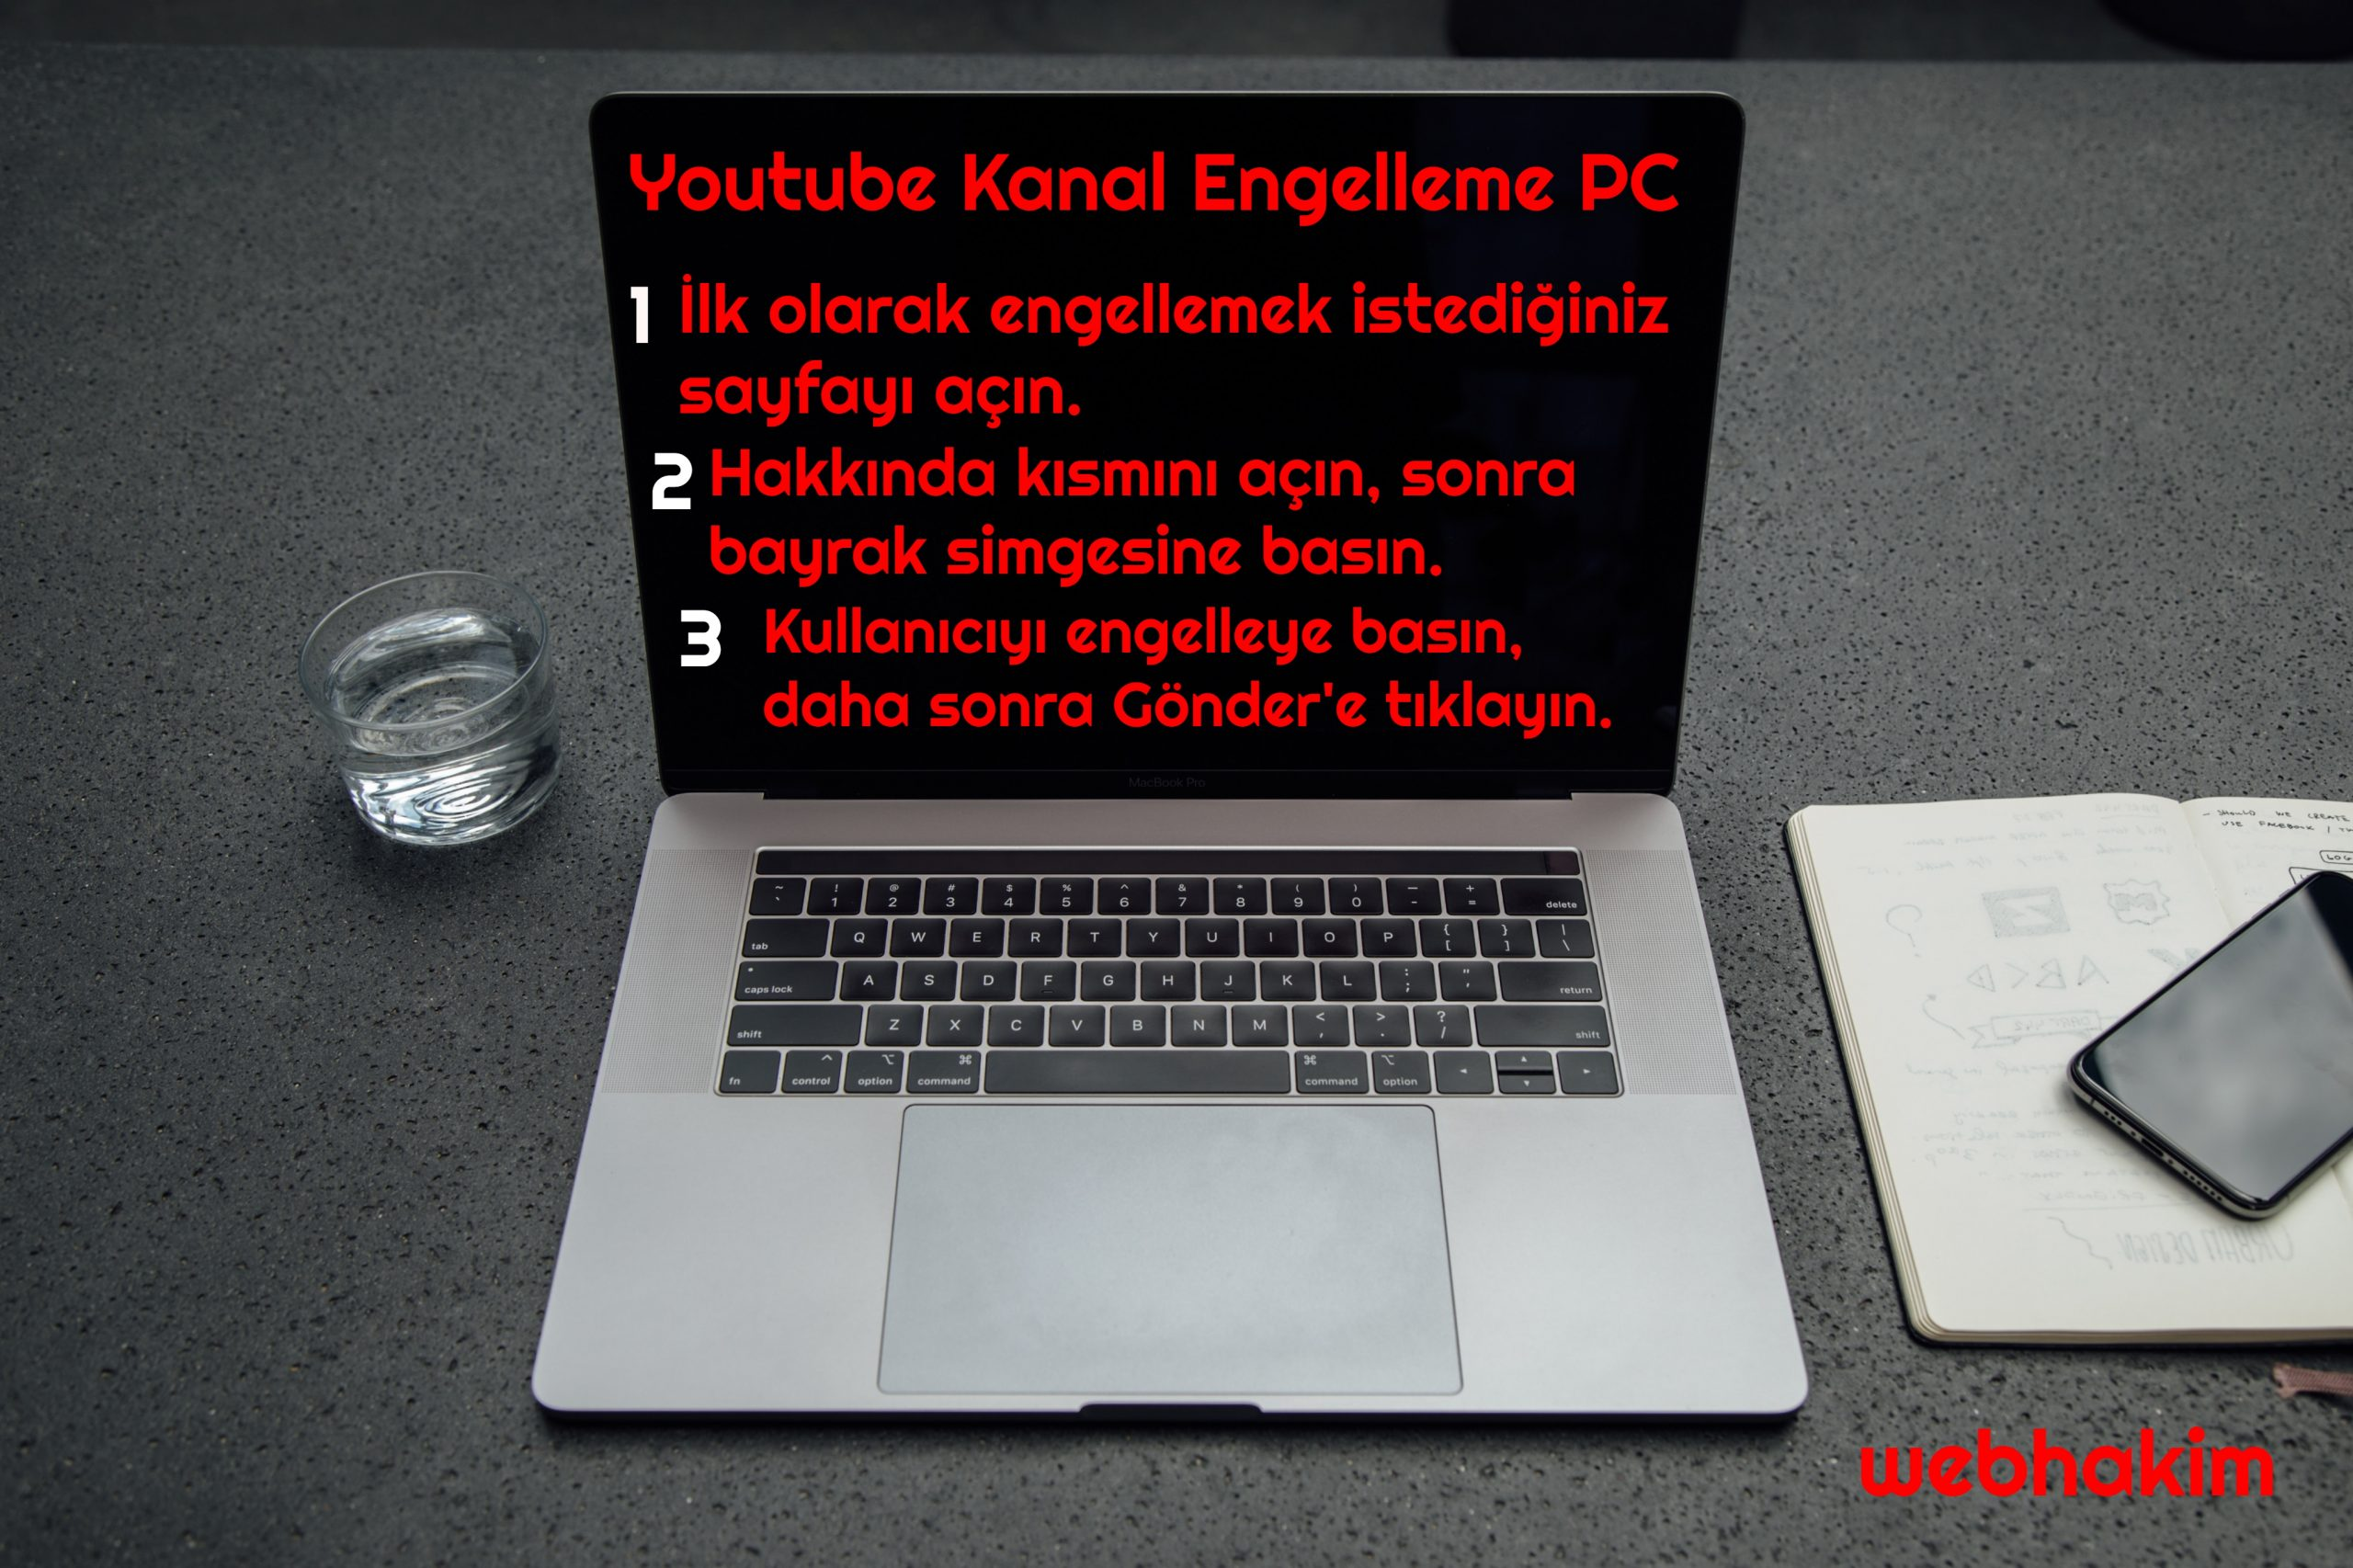 youtube kanal engelleme PC webhakim